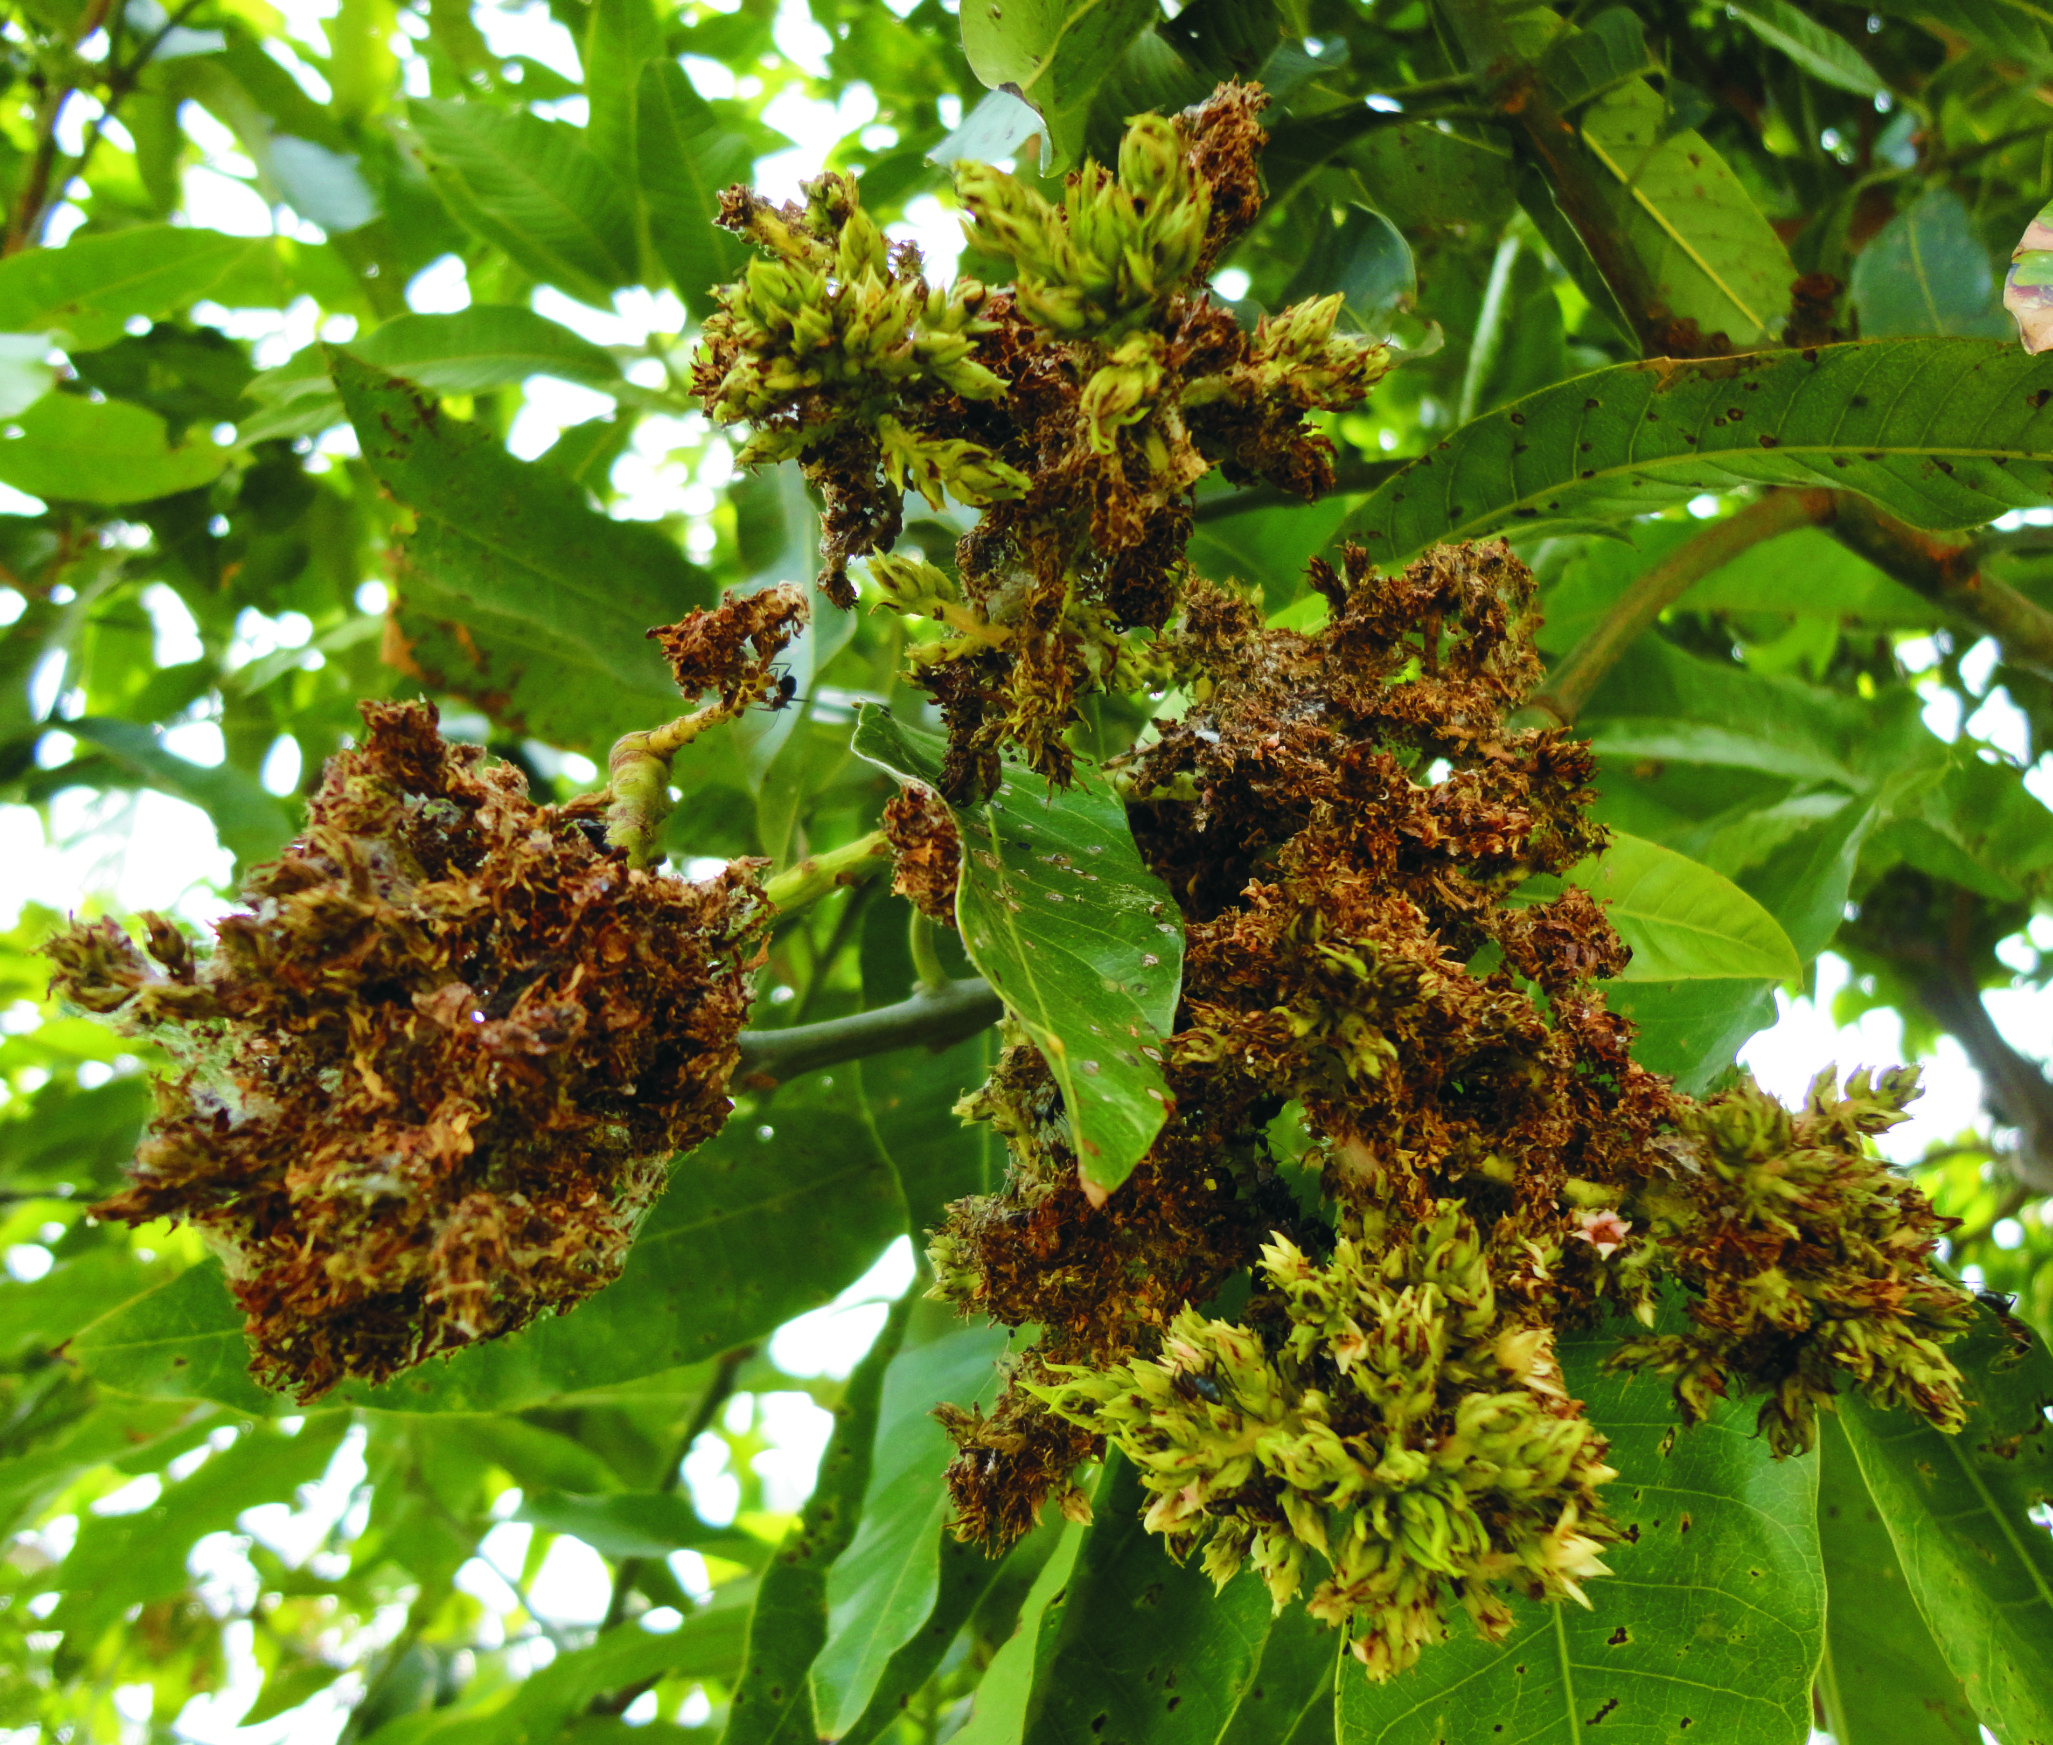 Floral malformation in mango tree